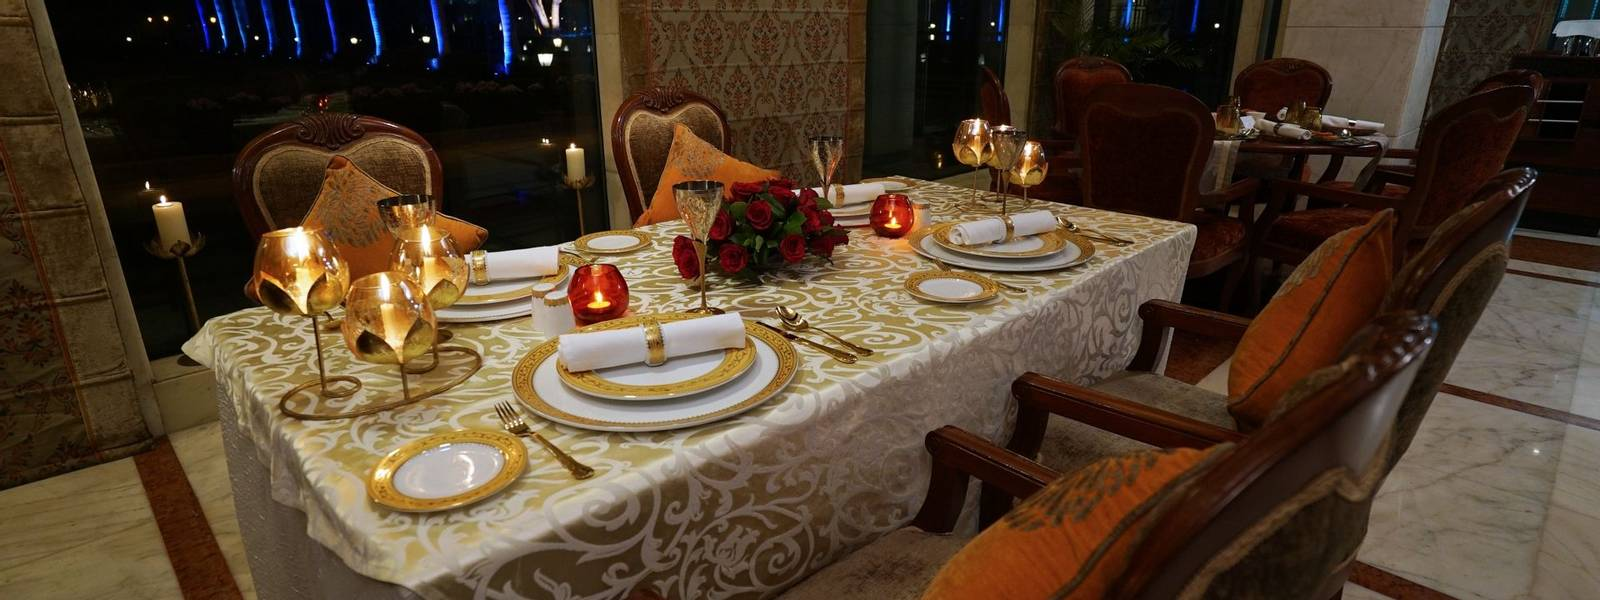 Rajasthan - Jaypee Palace -Patra Table.jpg